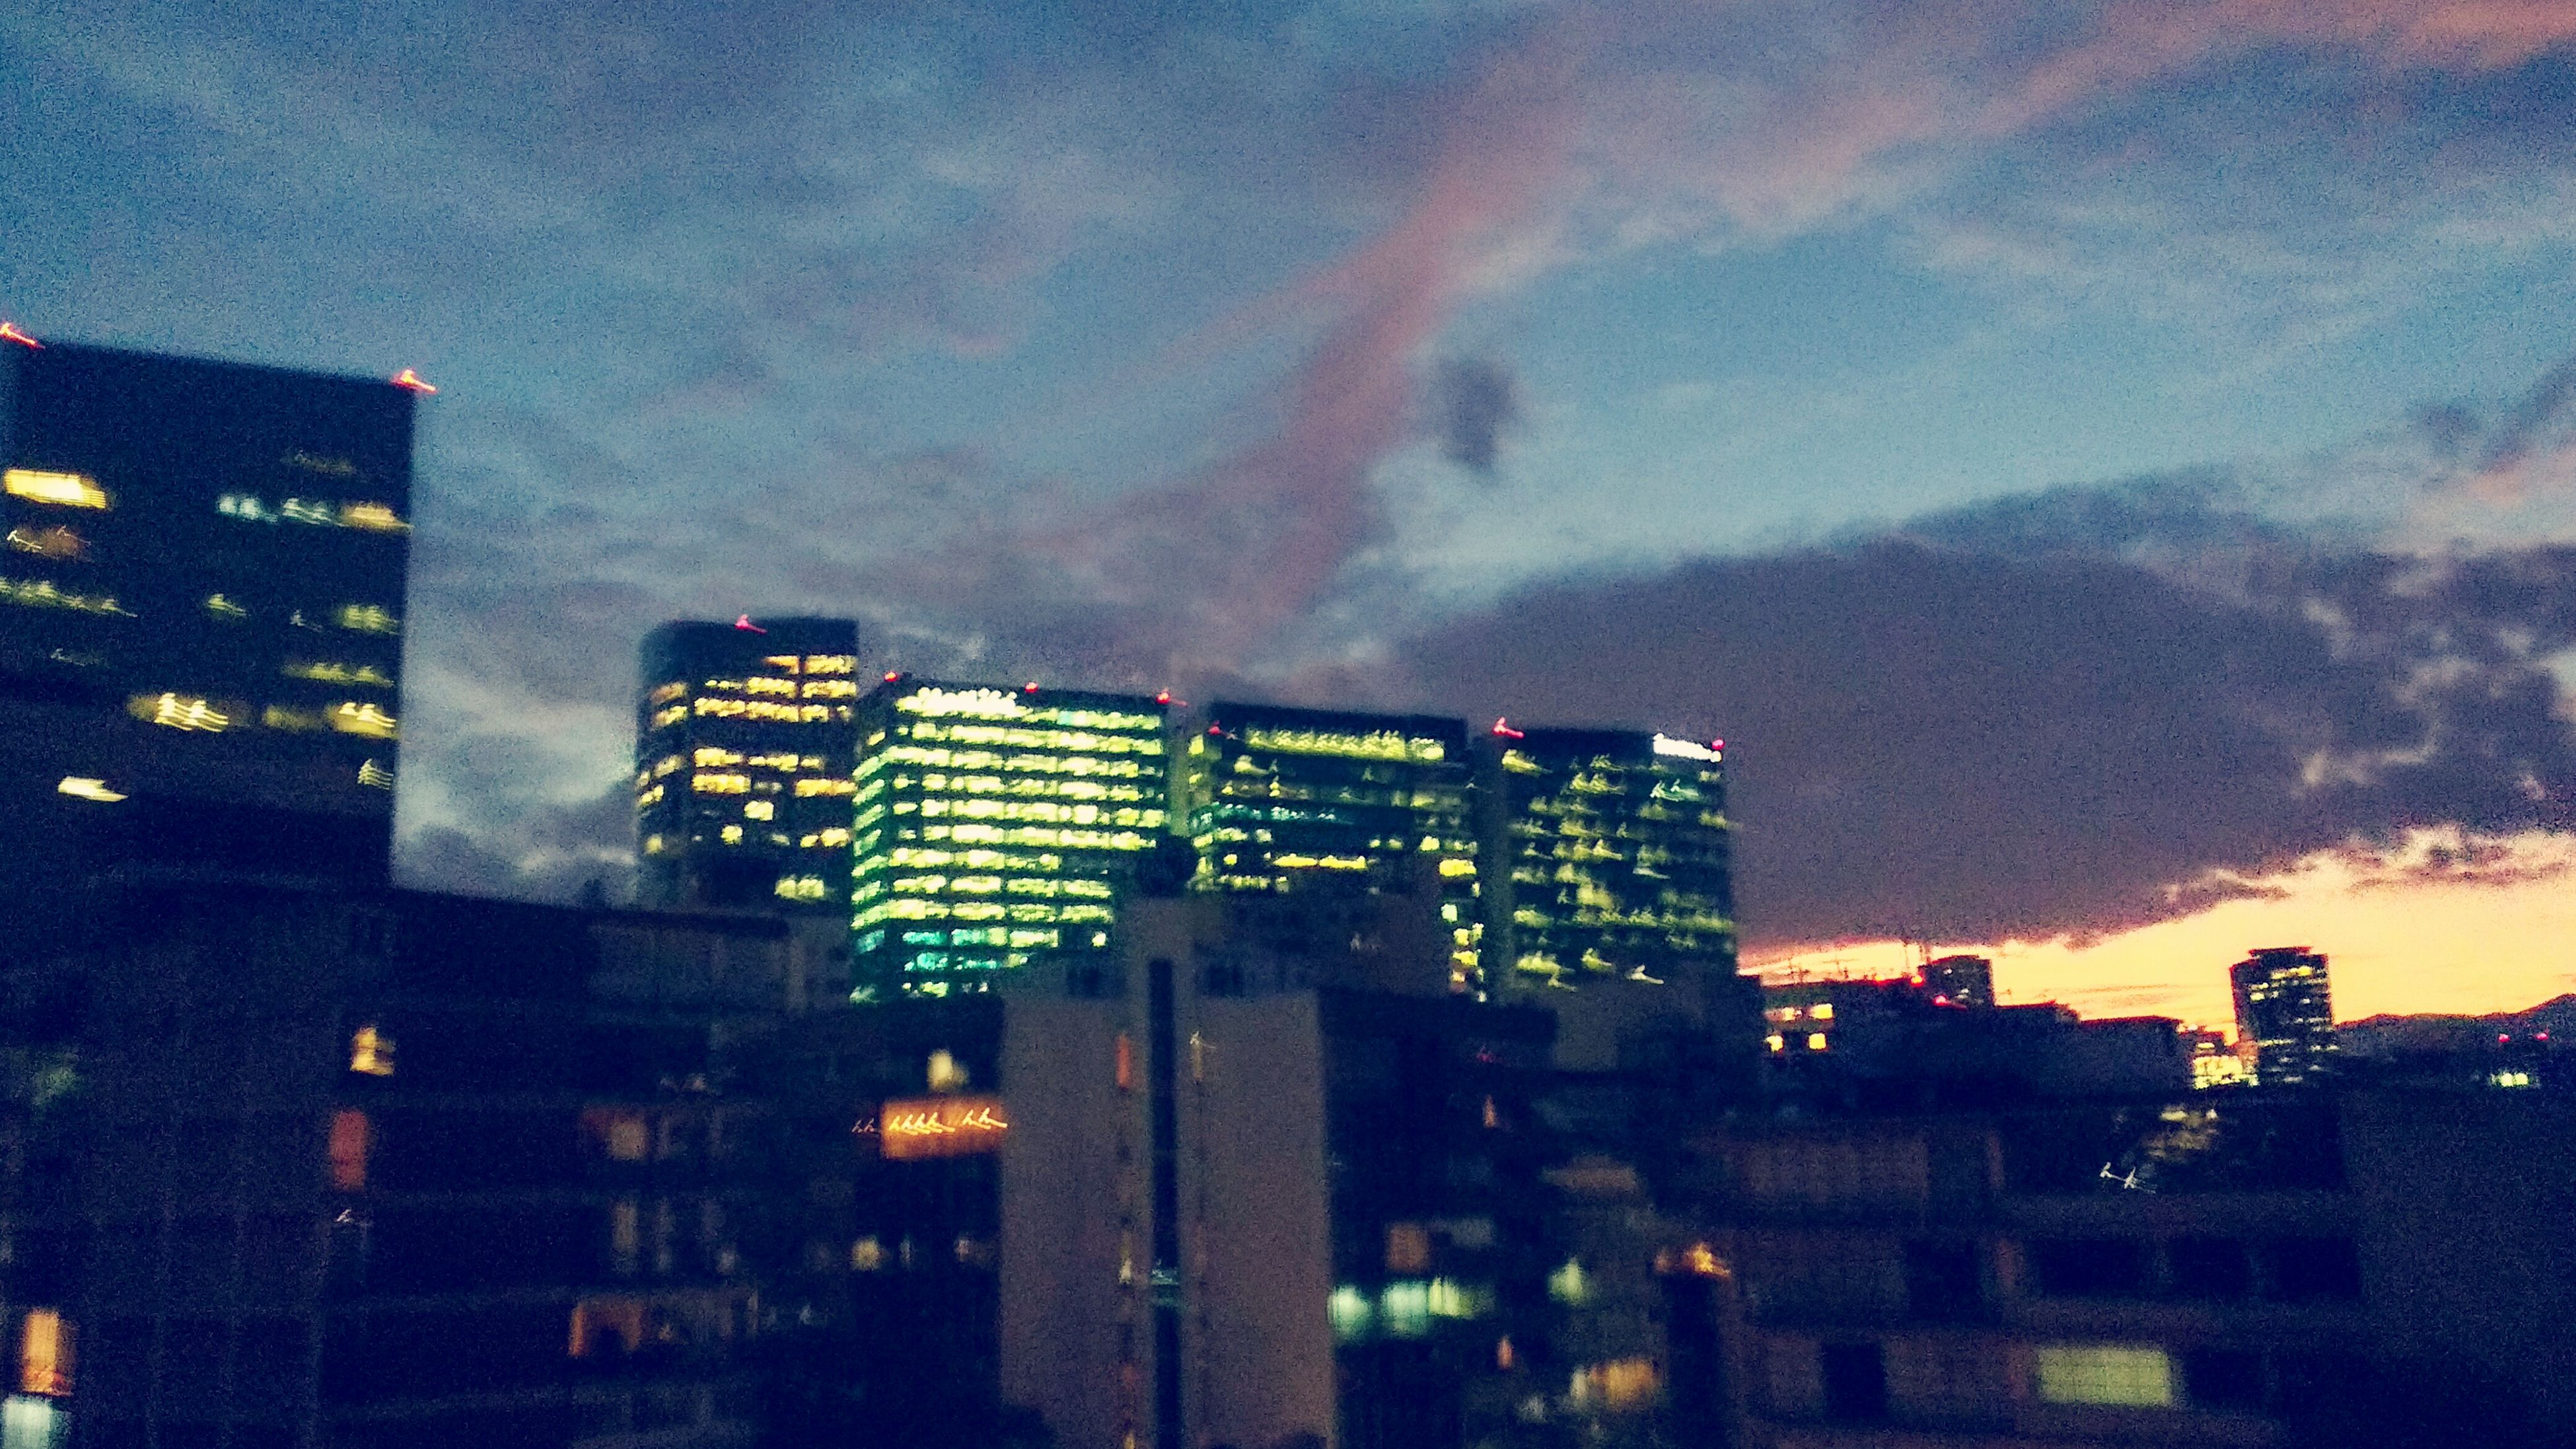 sky, building exterior, built structure, architecture, cloud - sky, text, illuminated, communication, city, low angle view, outdoors, cloudy, dusk, no people, western script, cloud, night, street light, lighting equipment, building